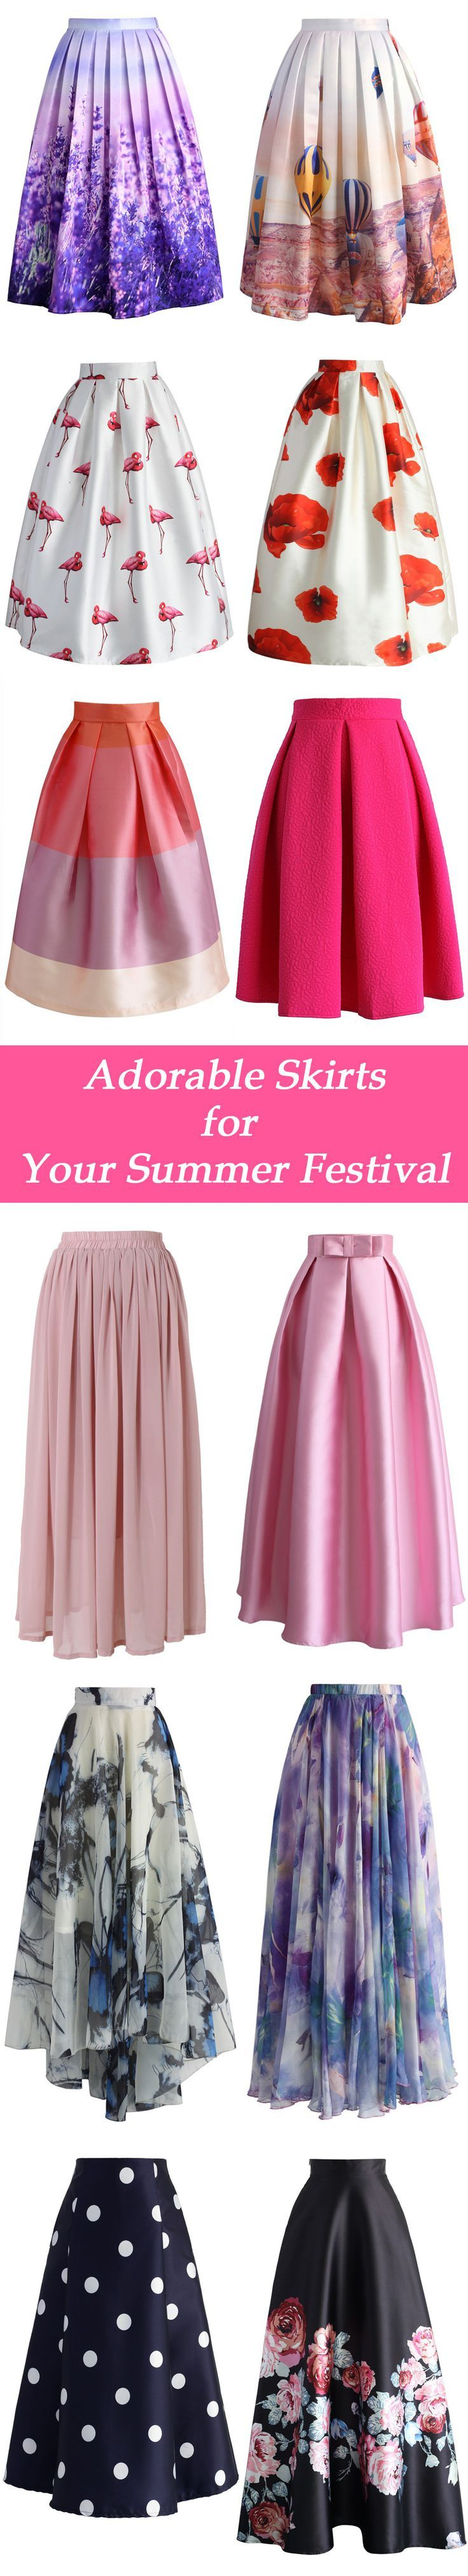 Adorable skirts for your summer festivals chicwish.com